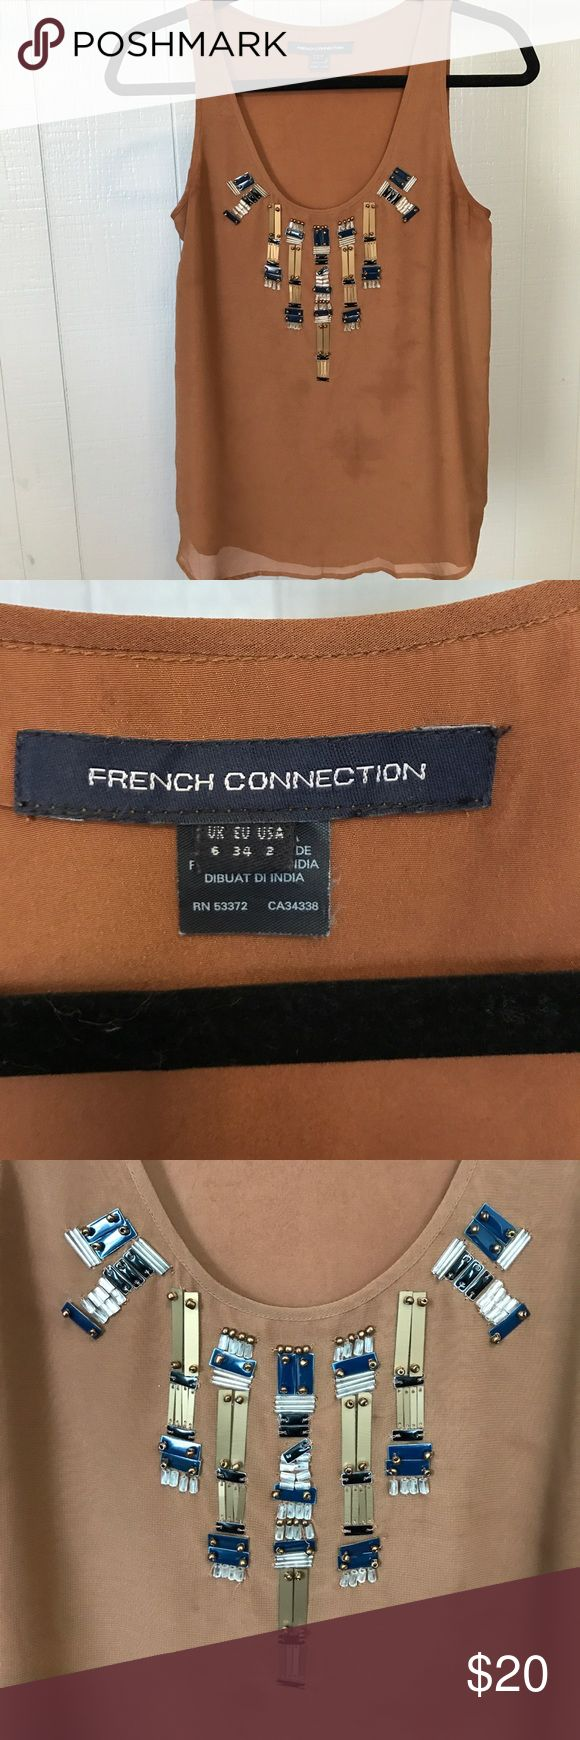 French Connection, brown tank with beaded detail. French Connection, camel color tank with scoop neck and beaded detail in front. Slight discoloration on front and back, but still in great condition. Perfect with jeans or a pencil skirt! French Connection Tops Tank Tops